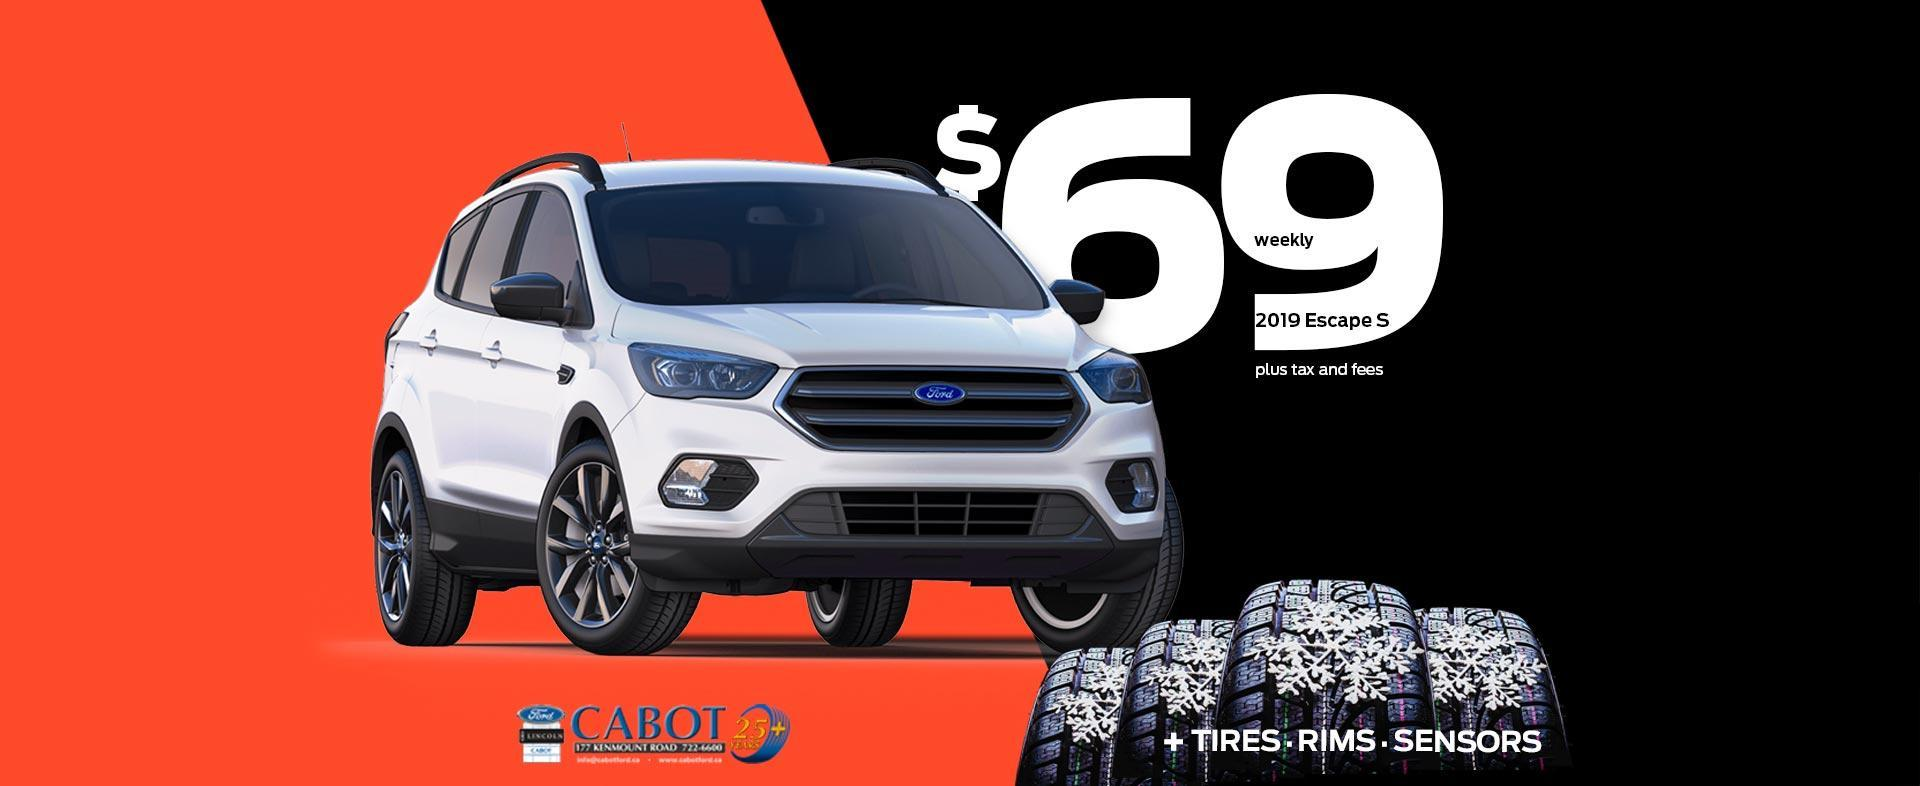 Just $69 weekly plus tax and fees for the 2019 Escape S, plus tires, rims, and sensors at no extra charge!